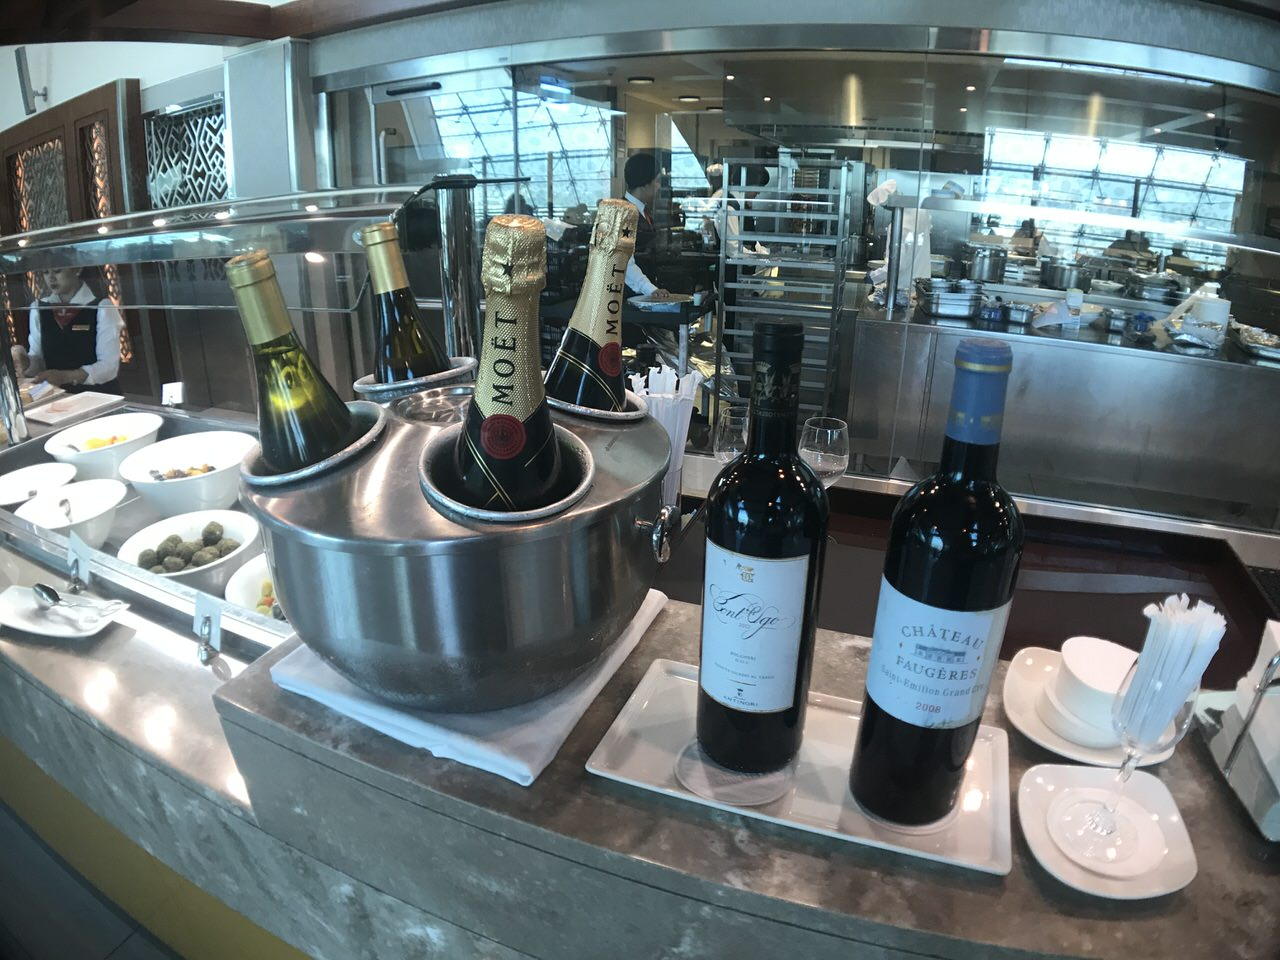 Emirates lounge 1144